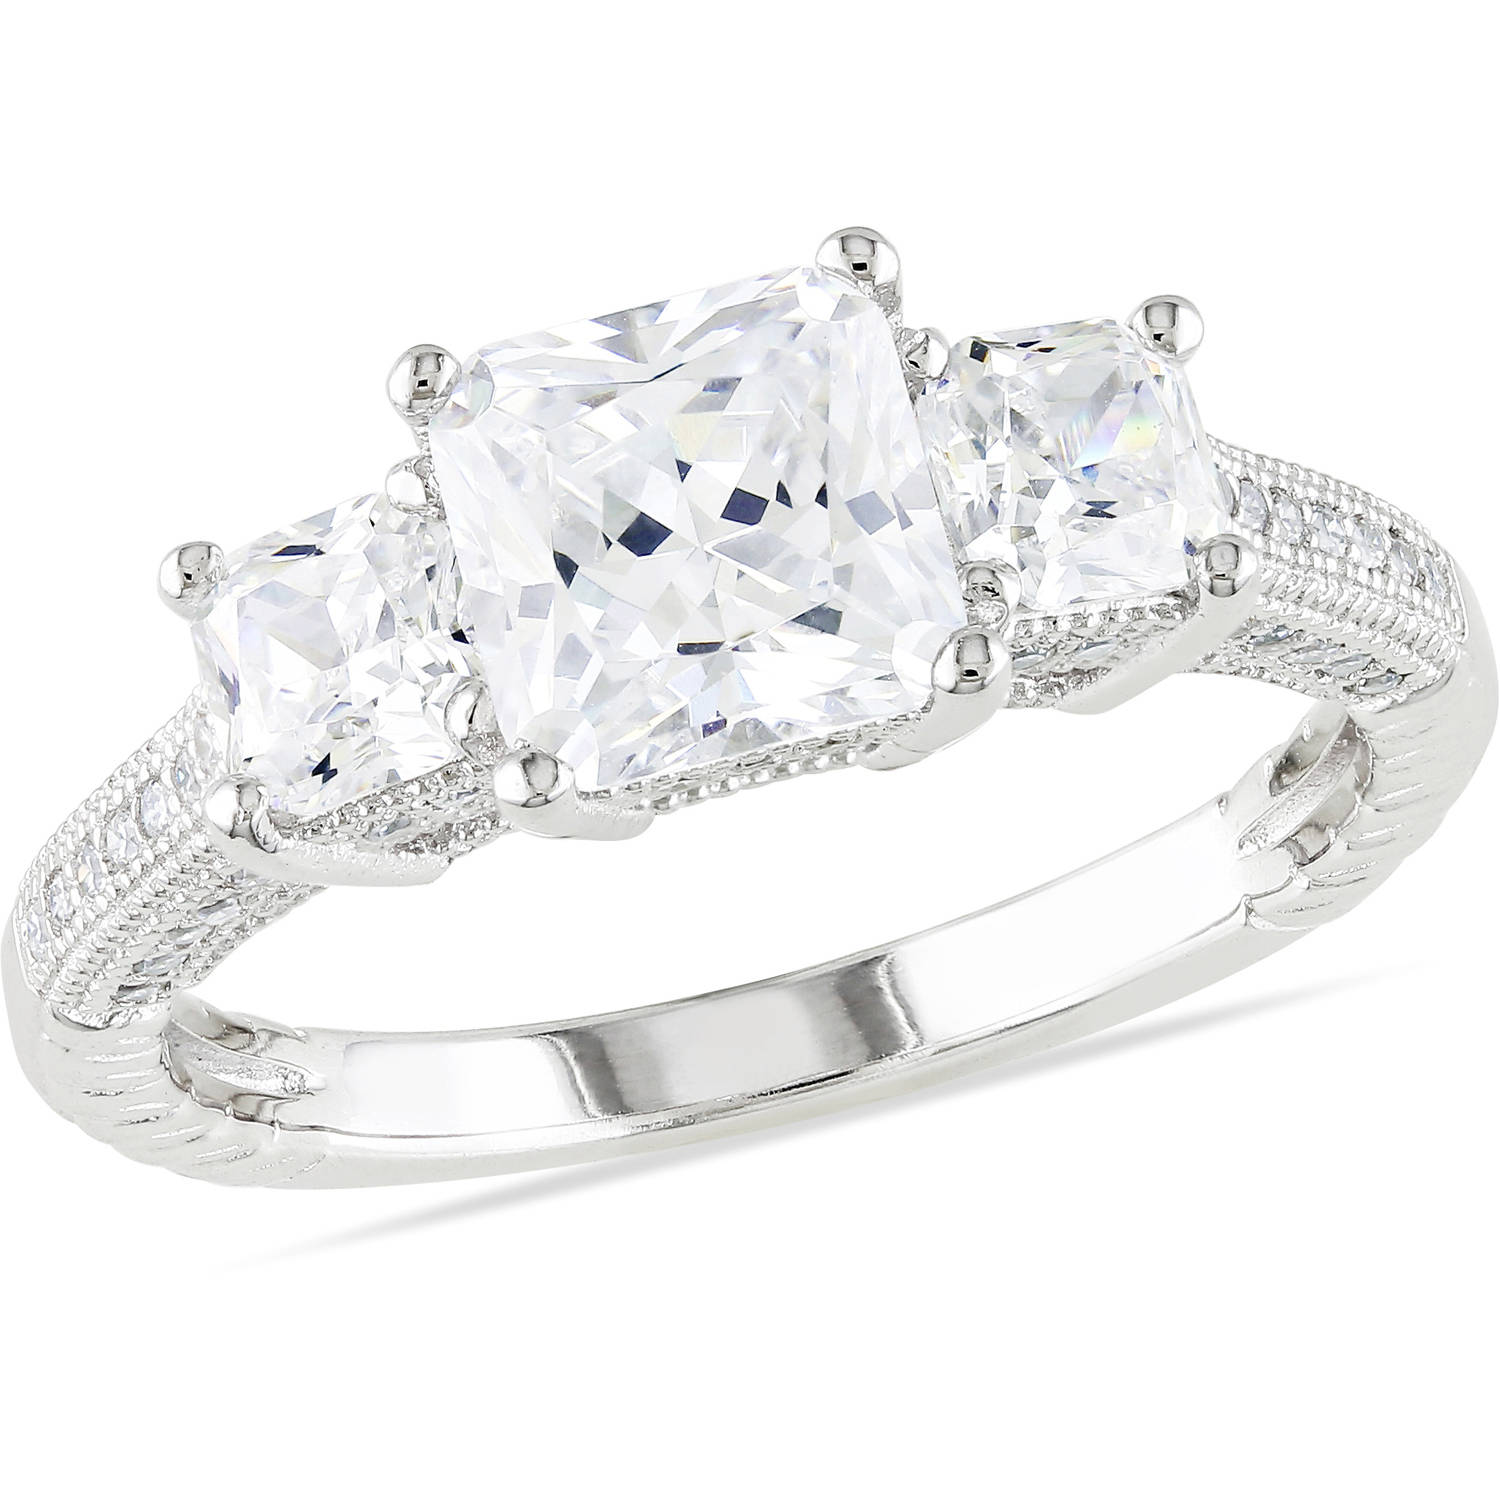 wedding engagement rings walmartcom - Pictures Of Wedding Rings